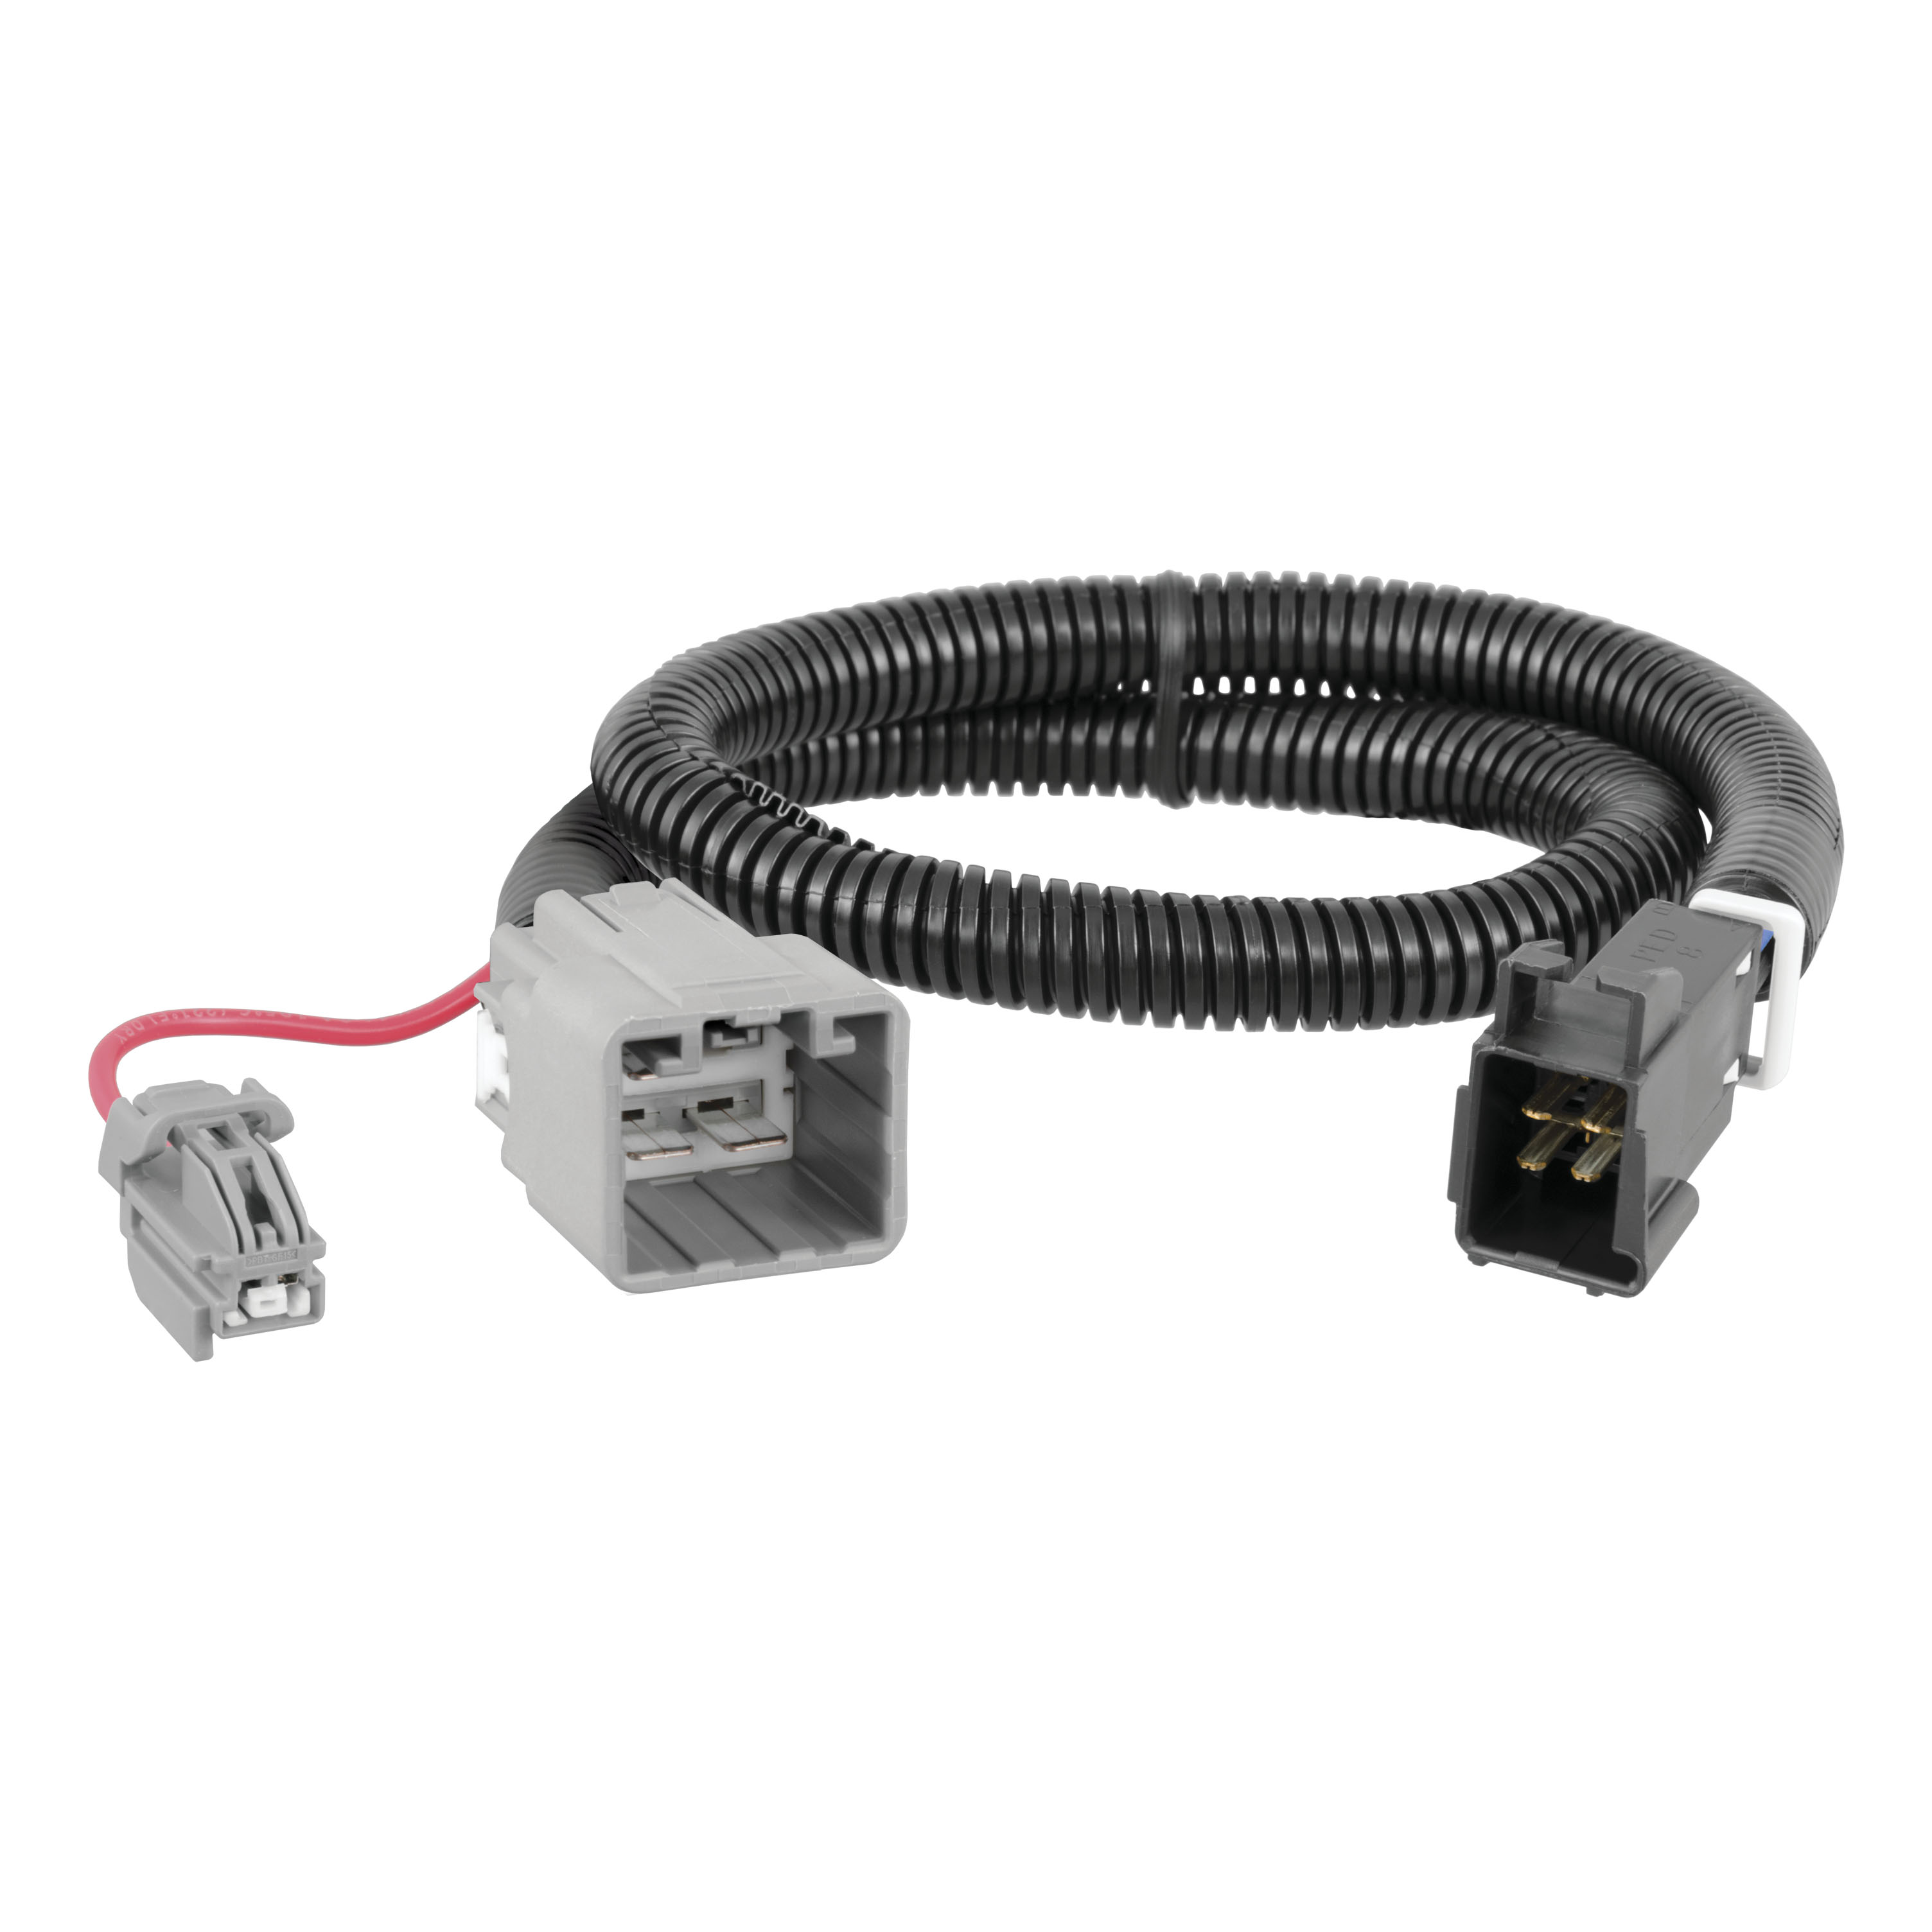 Curt Venturer Brake Controller Wiring Kit For 2013 2014 Ram 1500 How To Wire A Amp